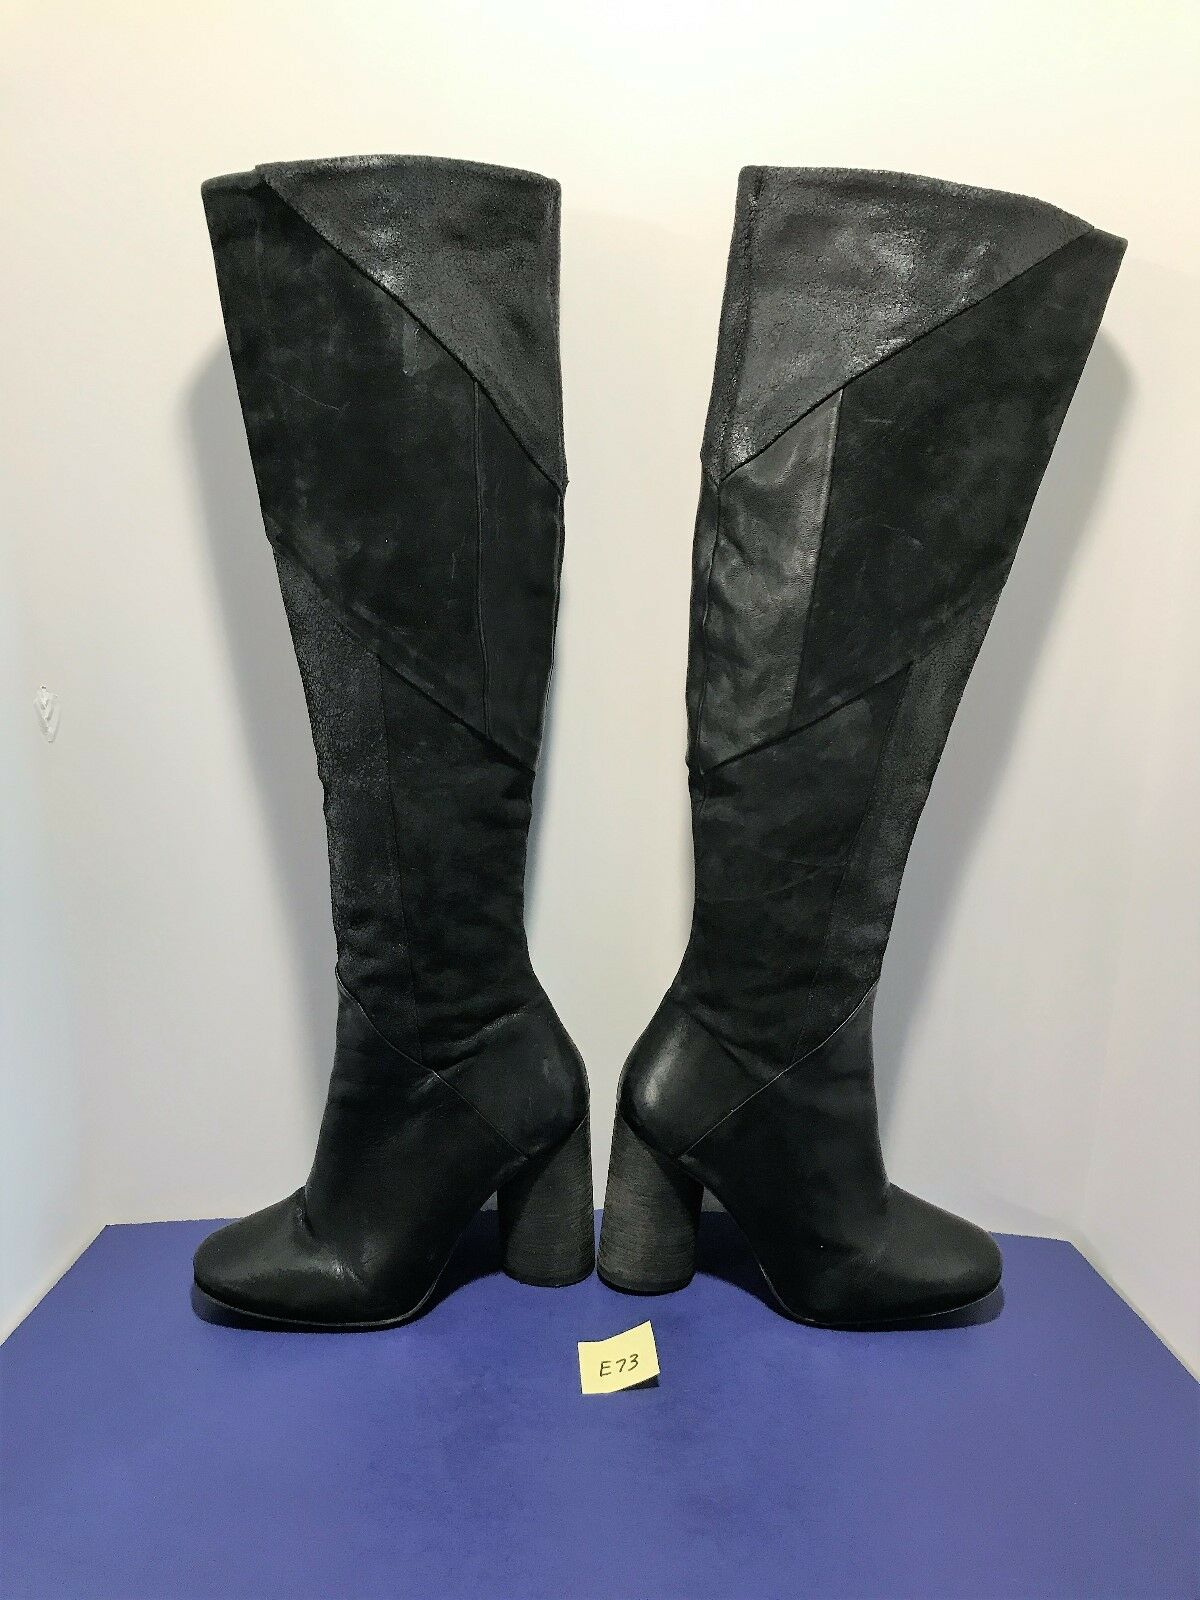 NEW Black Black Black FREE PEOPLE 'Bright Lights' Patchwork OTK Tall Boots Suede Leather E73 b72ad6